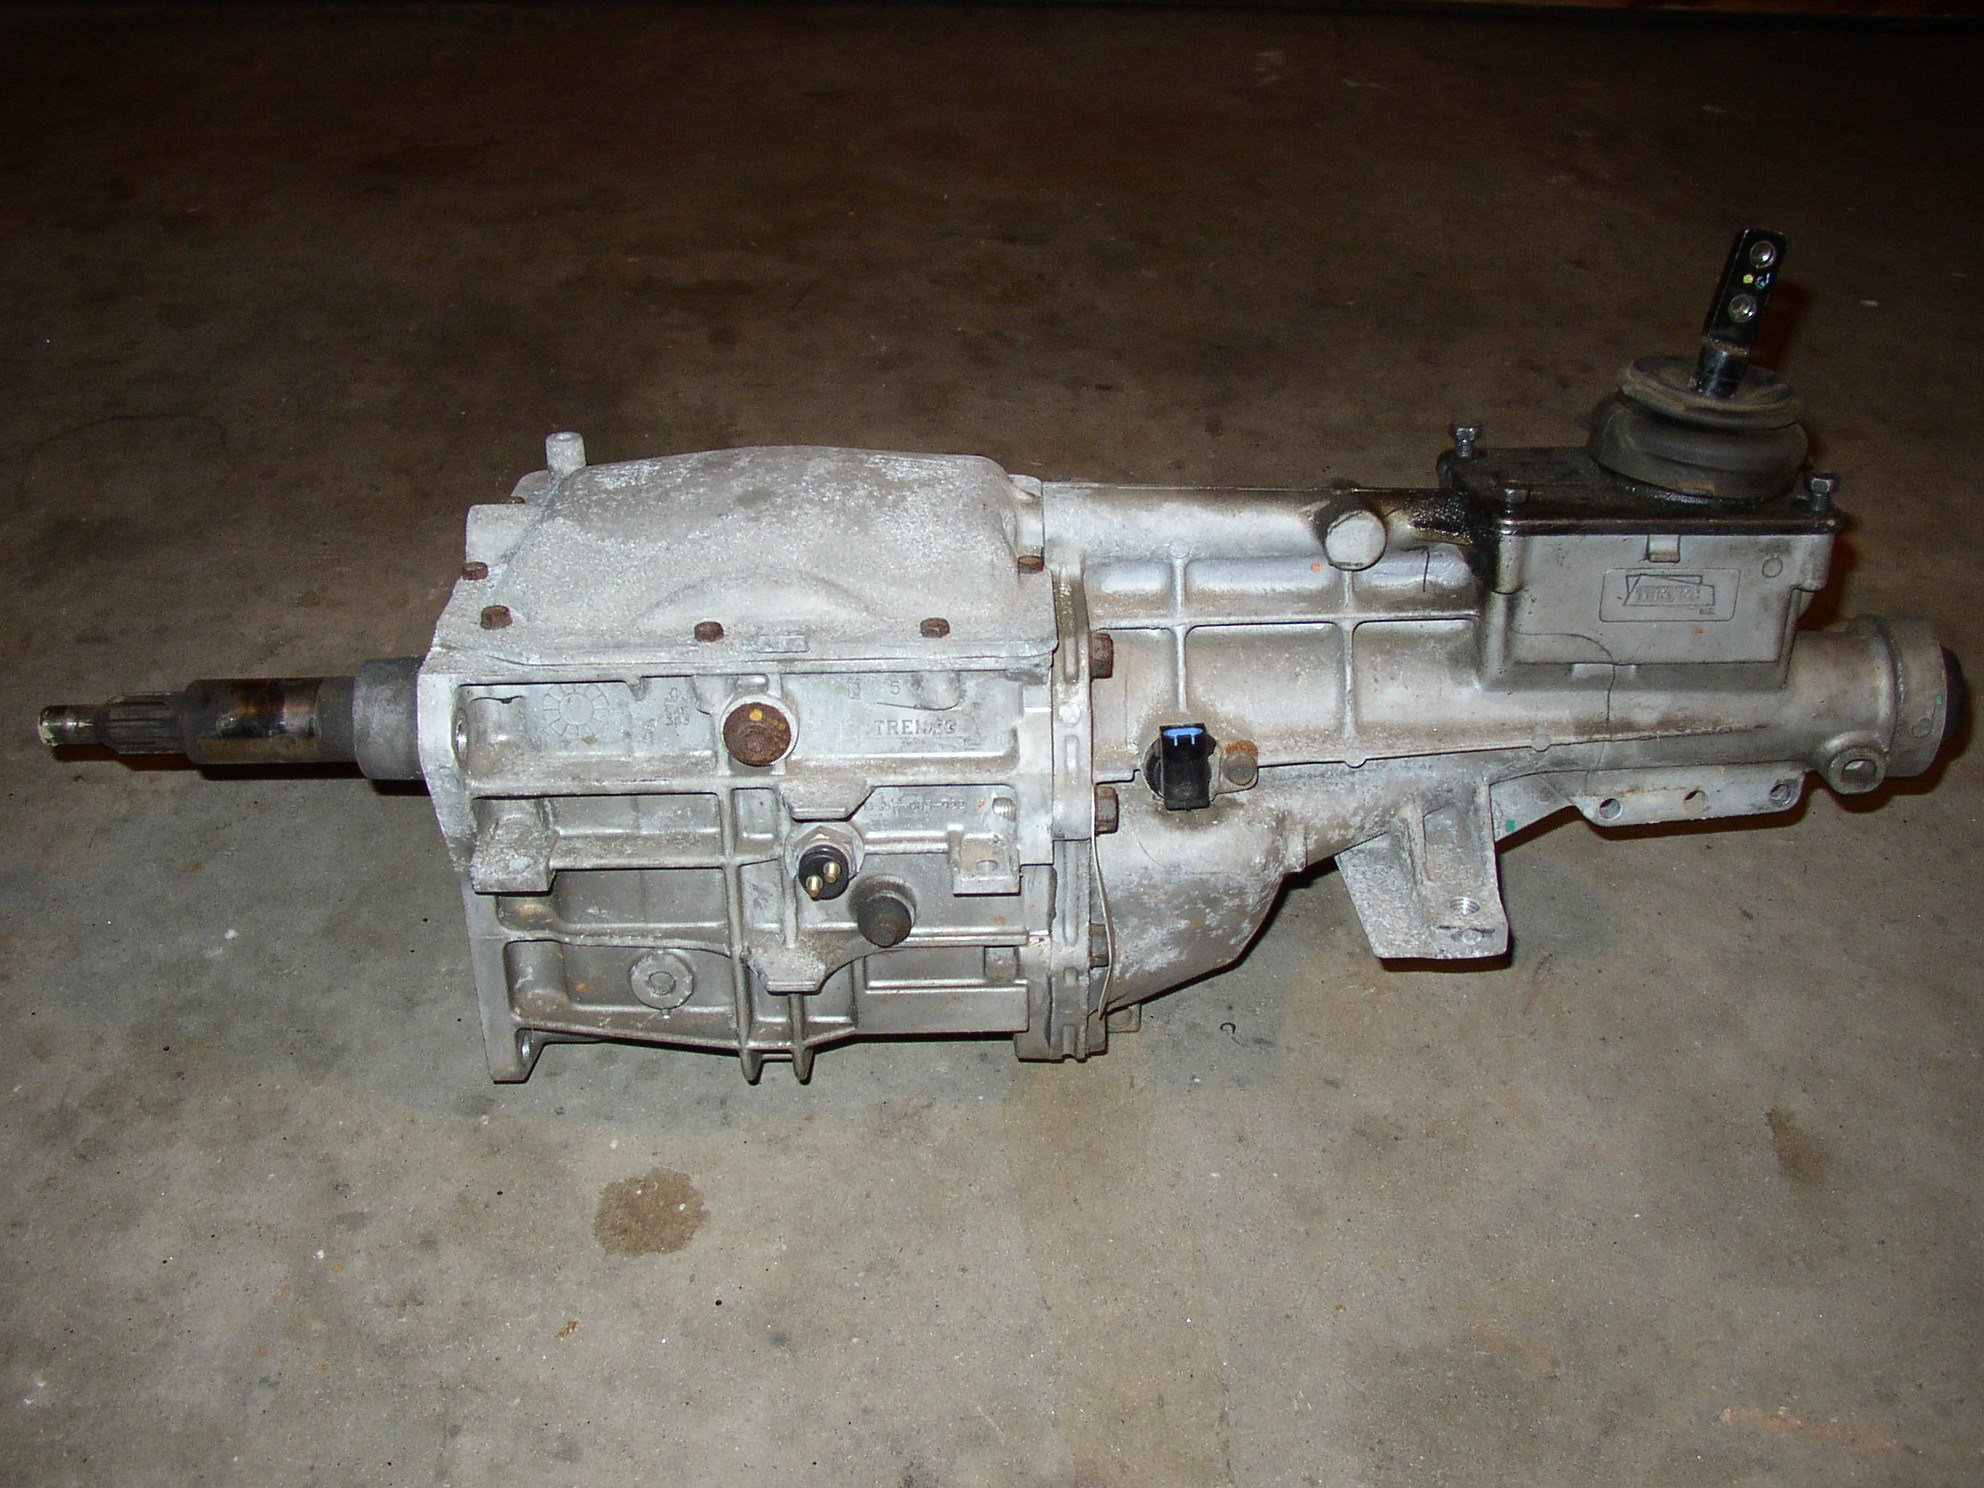 88710d1264294947 2000 mustang 3 8l automatic manual transmission swap p1040813 2000 mustang 3 8l, automatic to manual transmission swap ford 1989 Mustang Alternator Wiring Diagram at creativeand.co